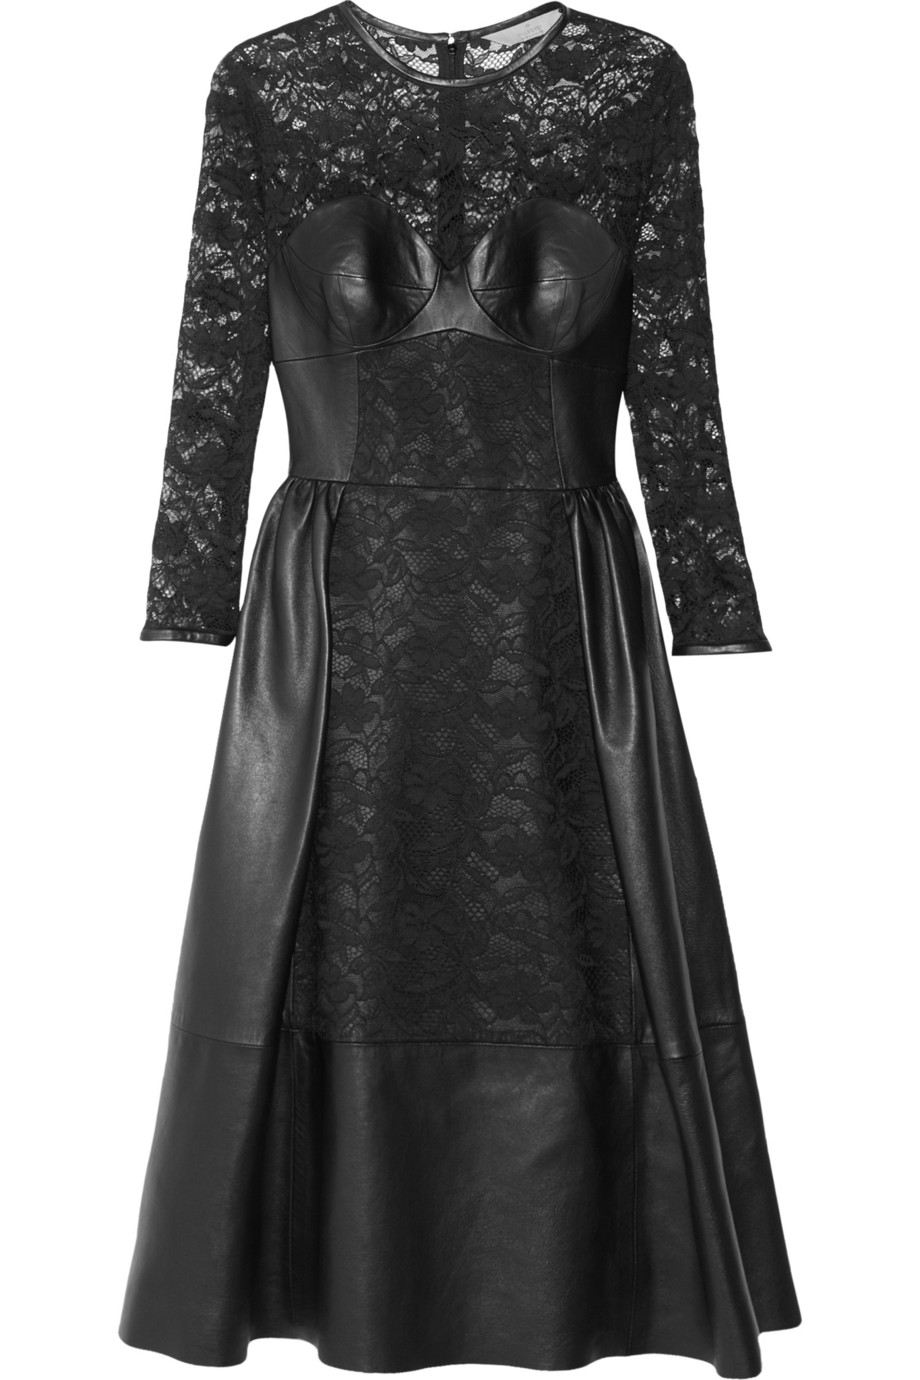 Mulberry Paneled Leather And Lace Dress In Black Lyst